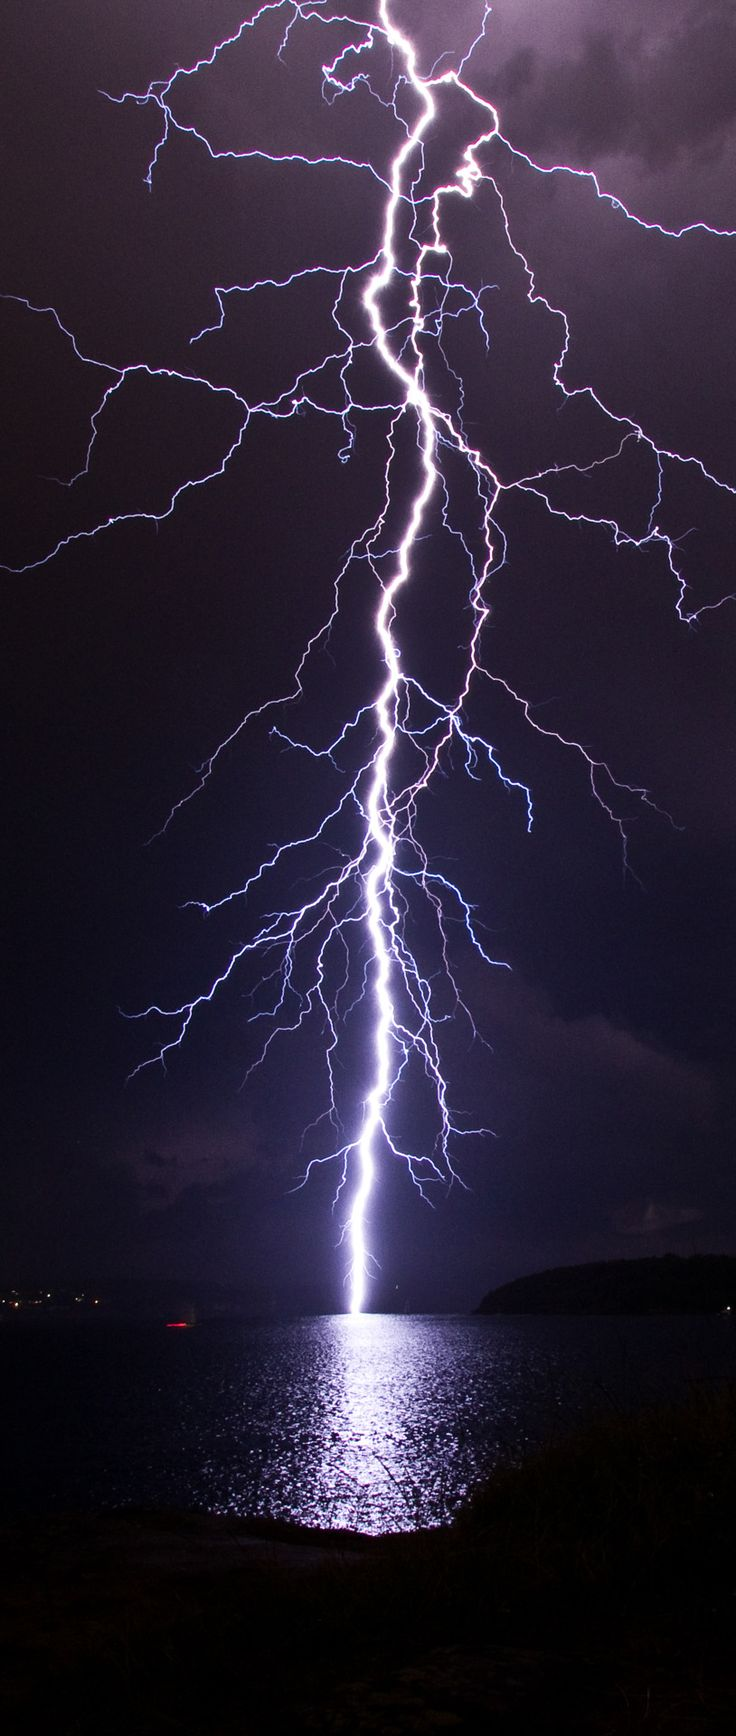 Lightning Strike - Sydney Thunderstorm 8th April 2012 By KAM=//=DHATT via Flickr